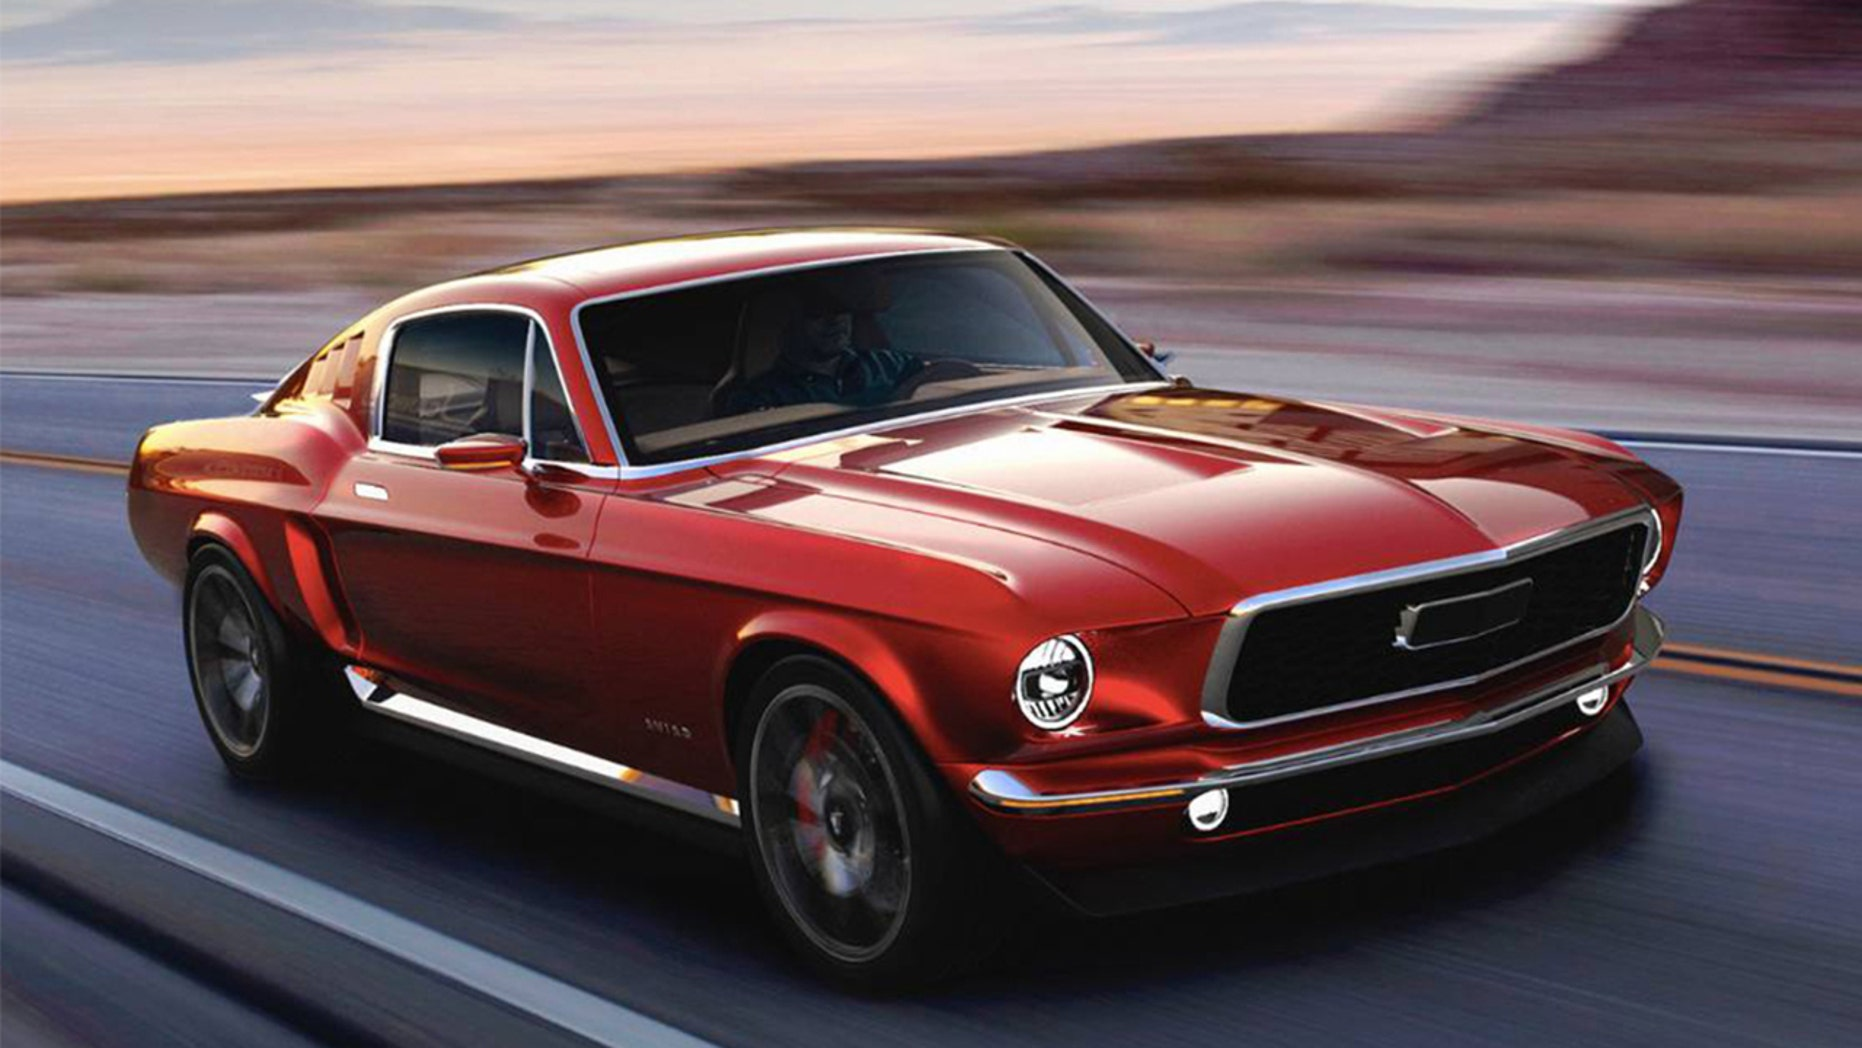 Retro Electric 1967 Ford Mustang Revealed In Russia